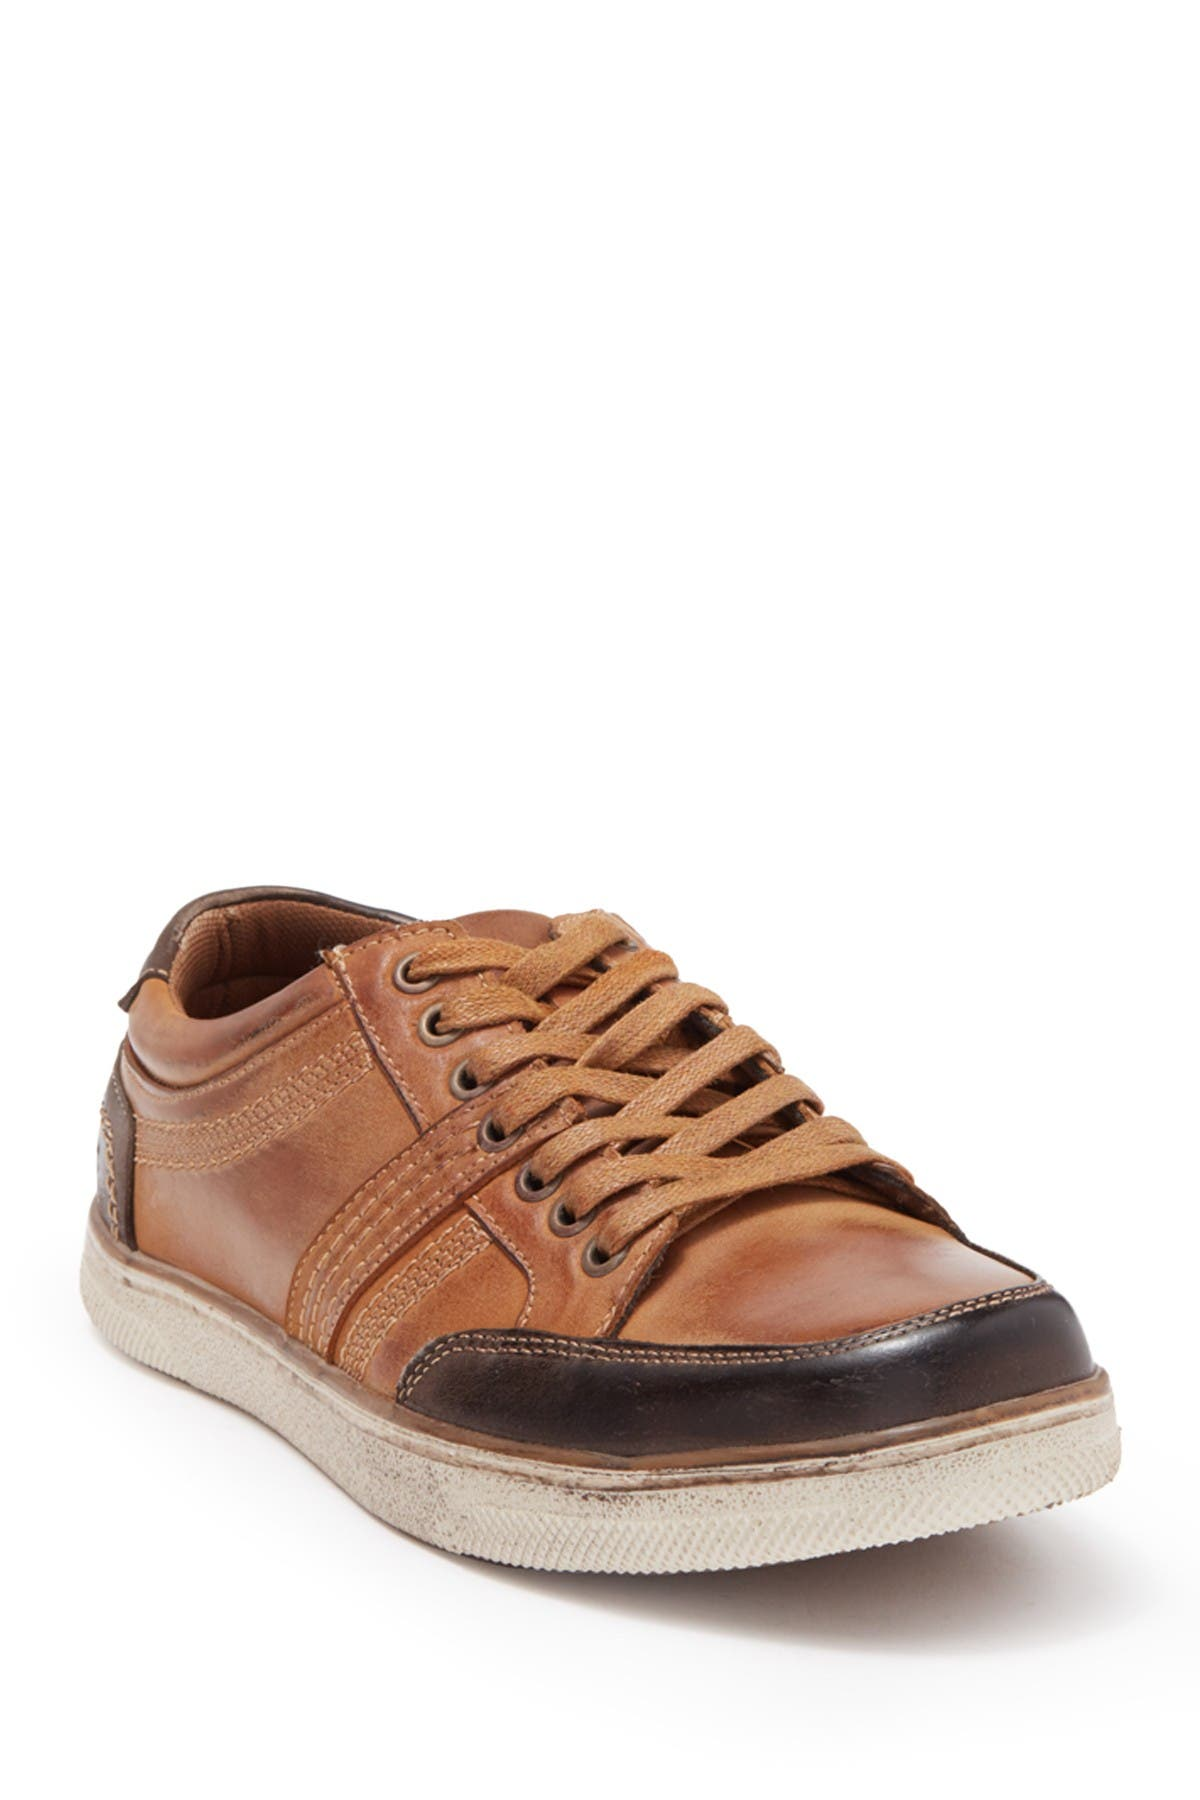 Image of Roan Wyatt Leather Sneaker